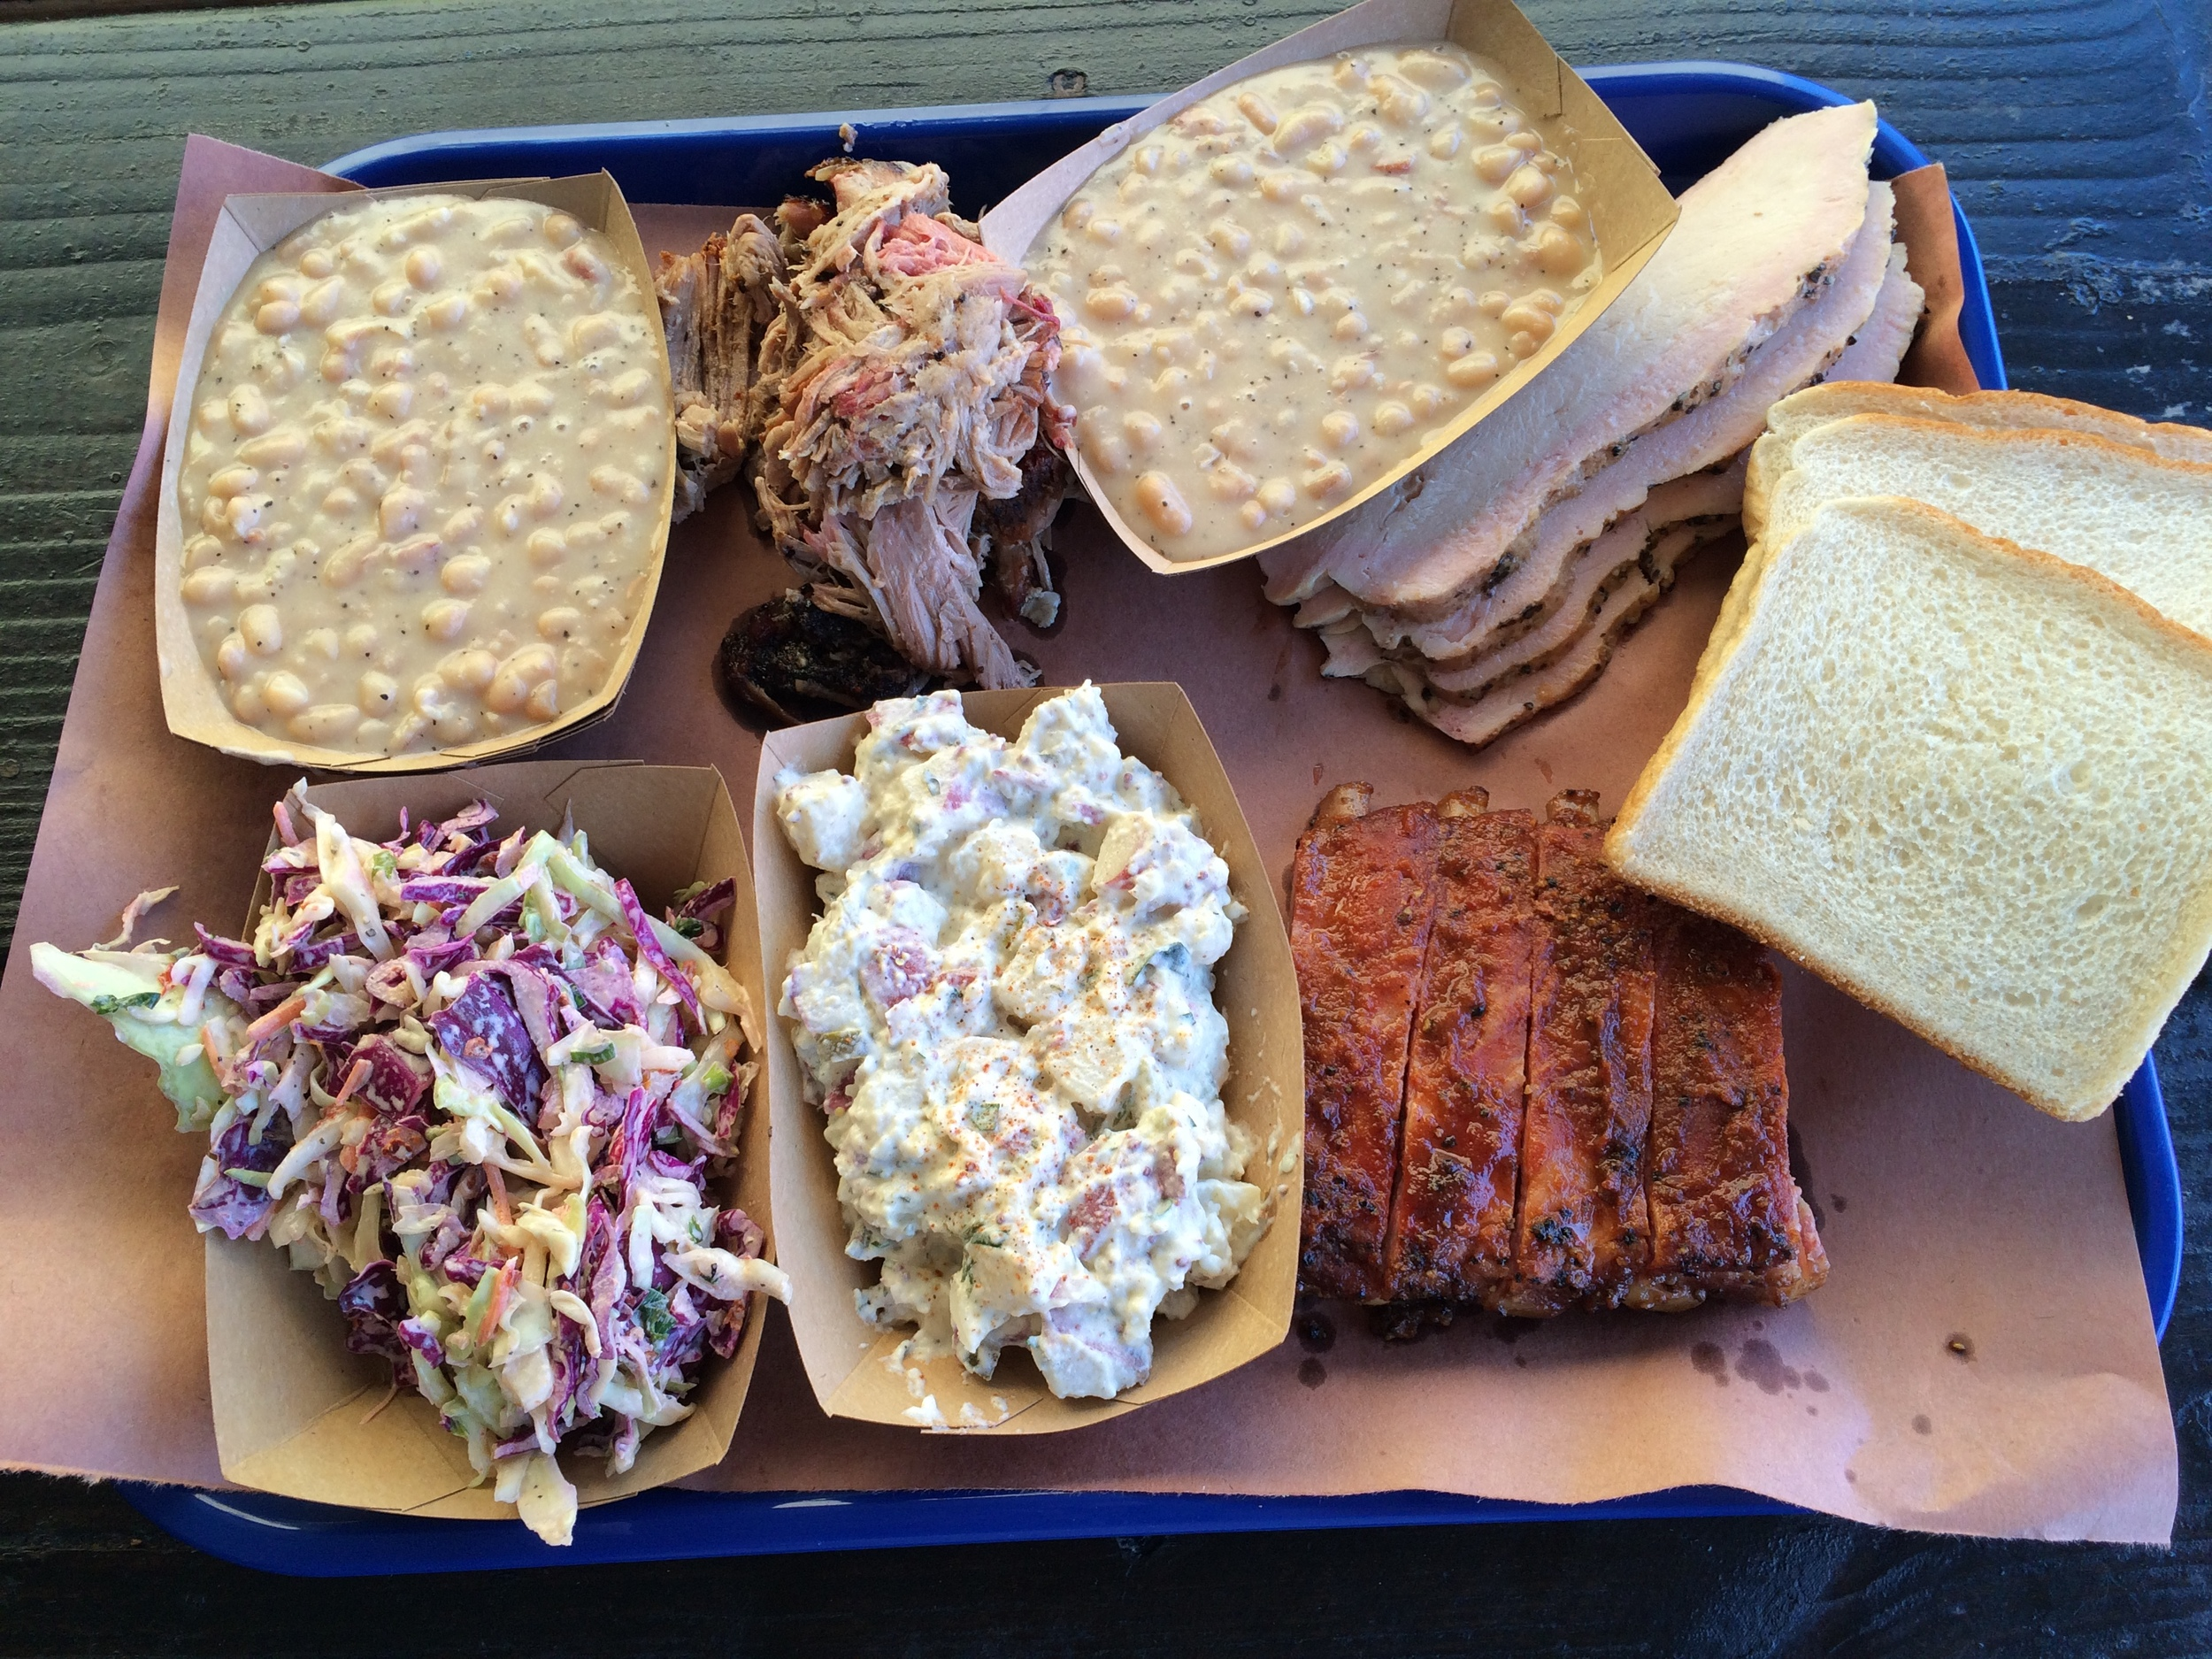 Beans, pulled pork, more beans (my wife loves them), smoked turkey, cole slaw, potato salad, and pork ribs - and yes, white bread!